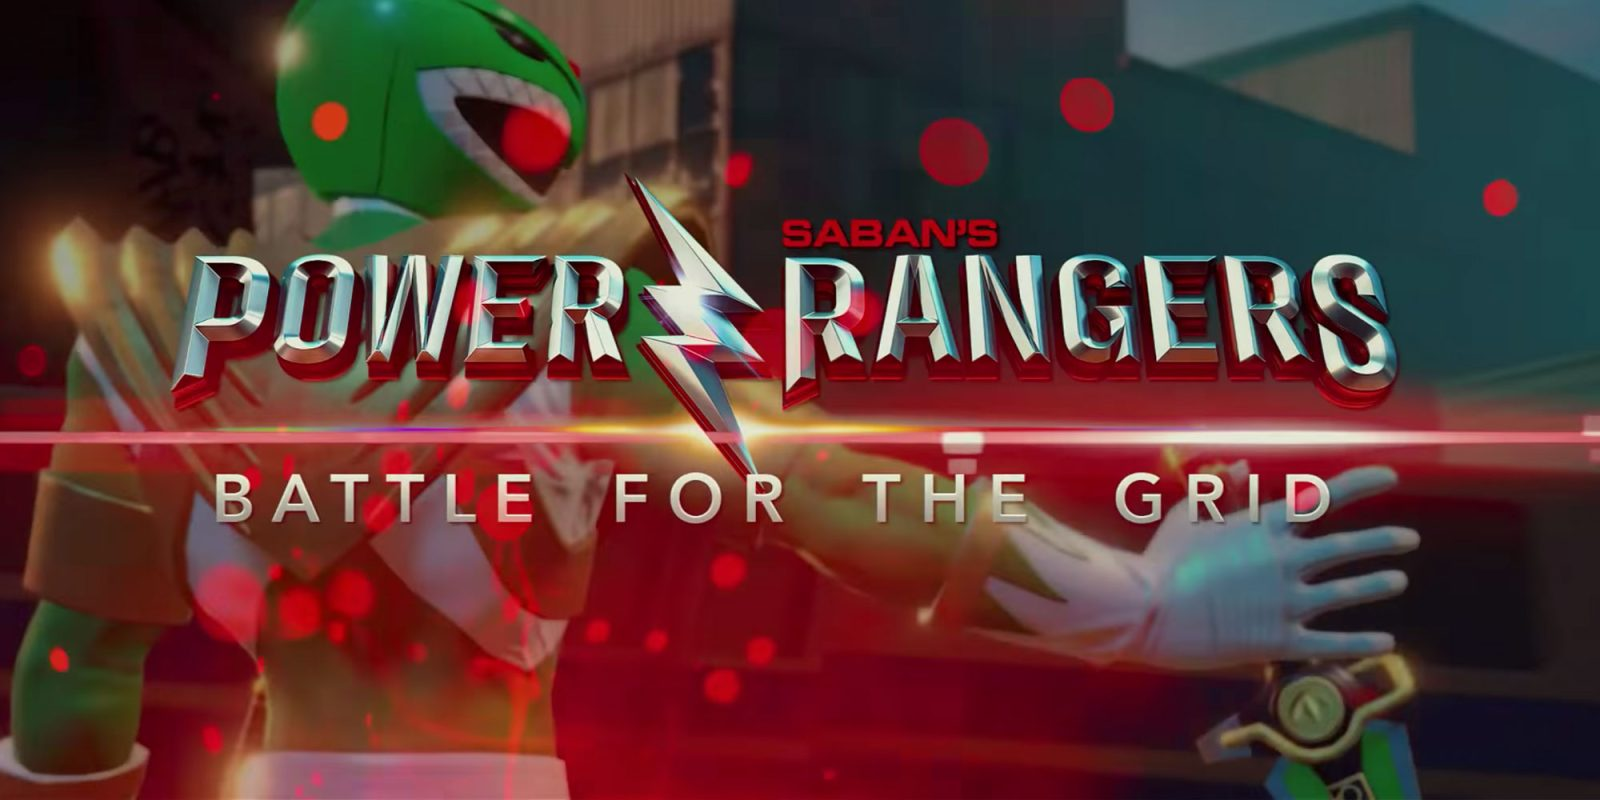 'Power Rangers' Is Getting a Cross-Platform Fighting Game